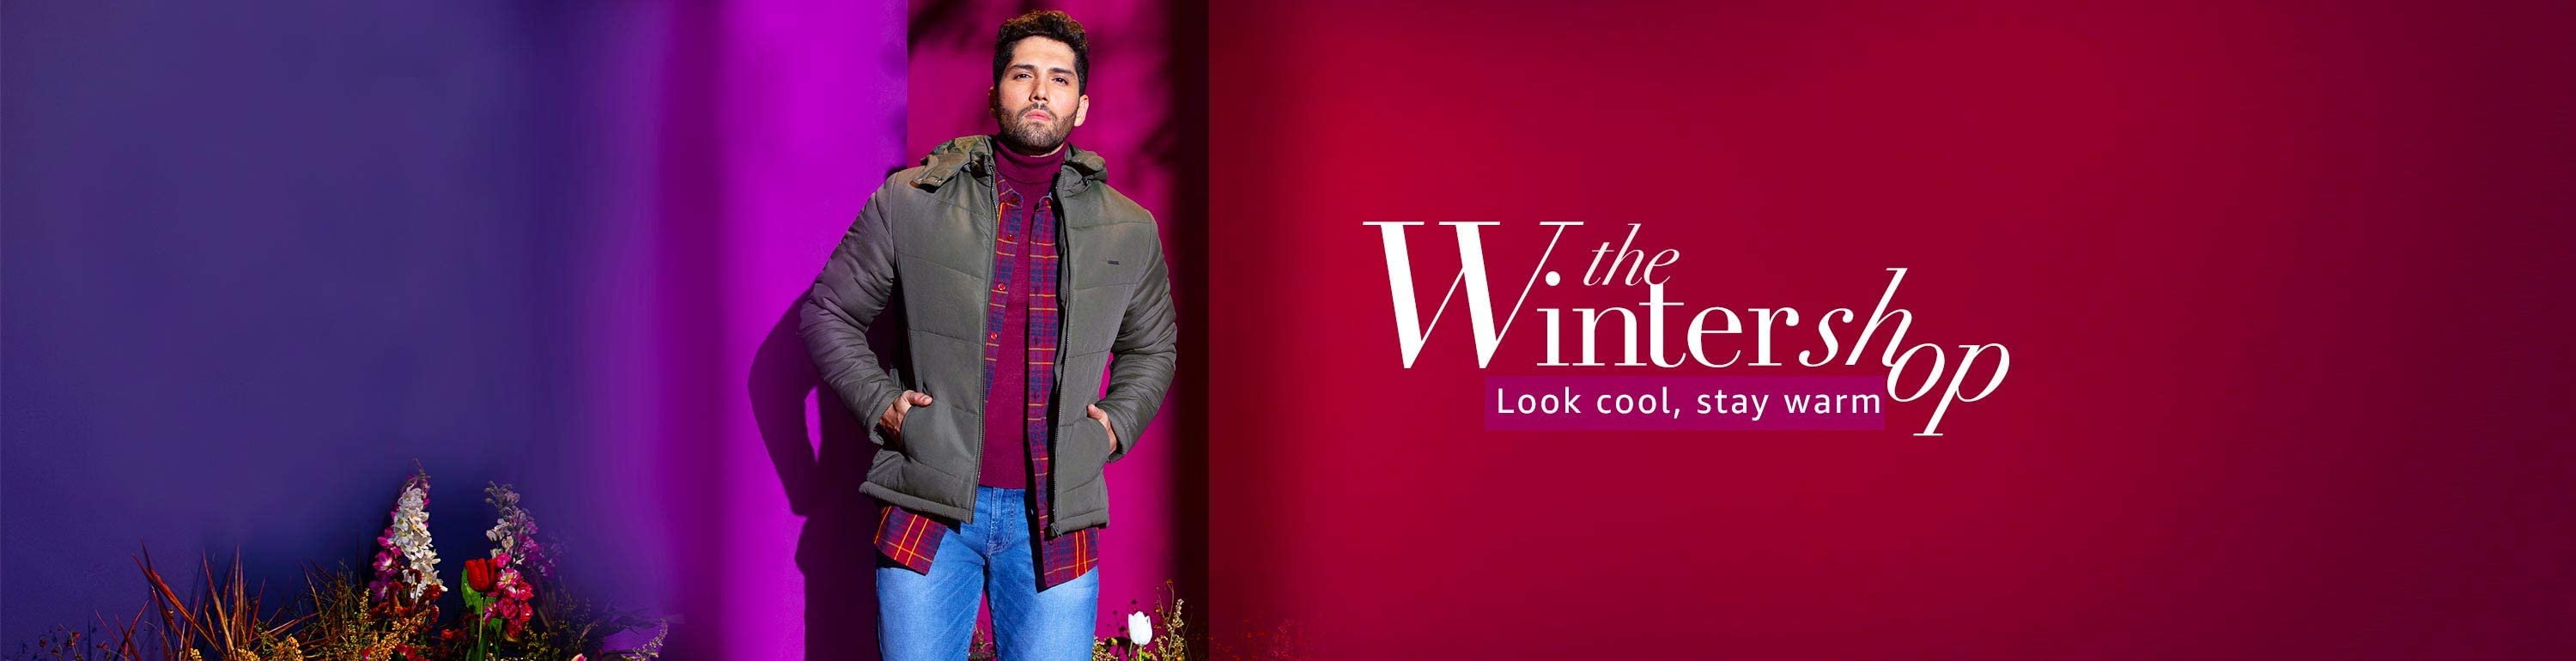 THE WINTER SHOP | Upto 70% Off On Men's Clothing